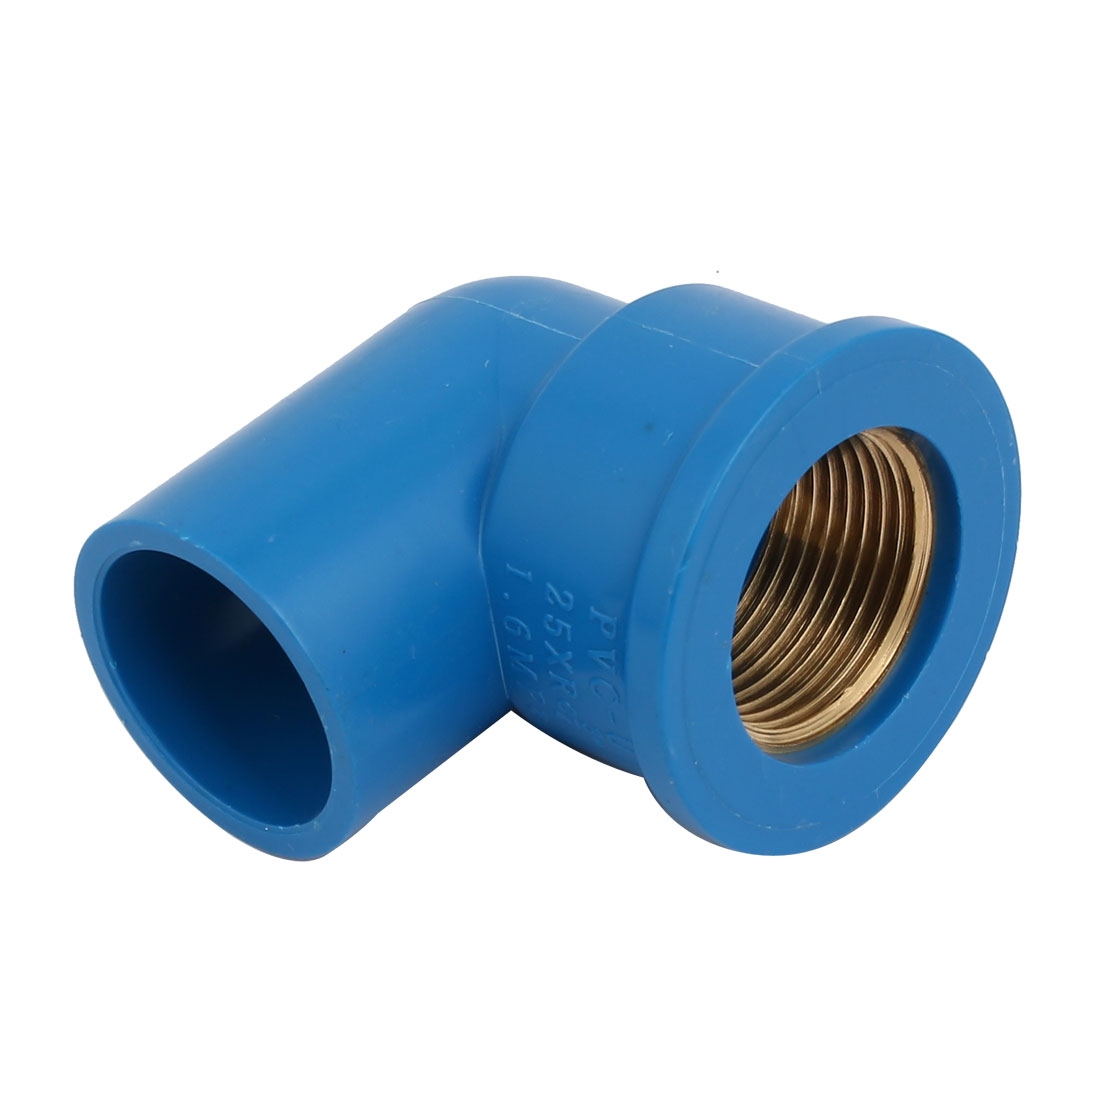 """RC3/4"""" Female Thread PVC-U 90 Degree Elbow Pipe Fitting Connector Adapter Blue"""